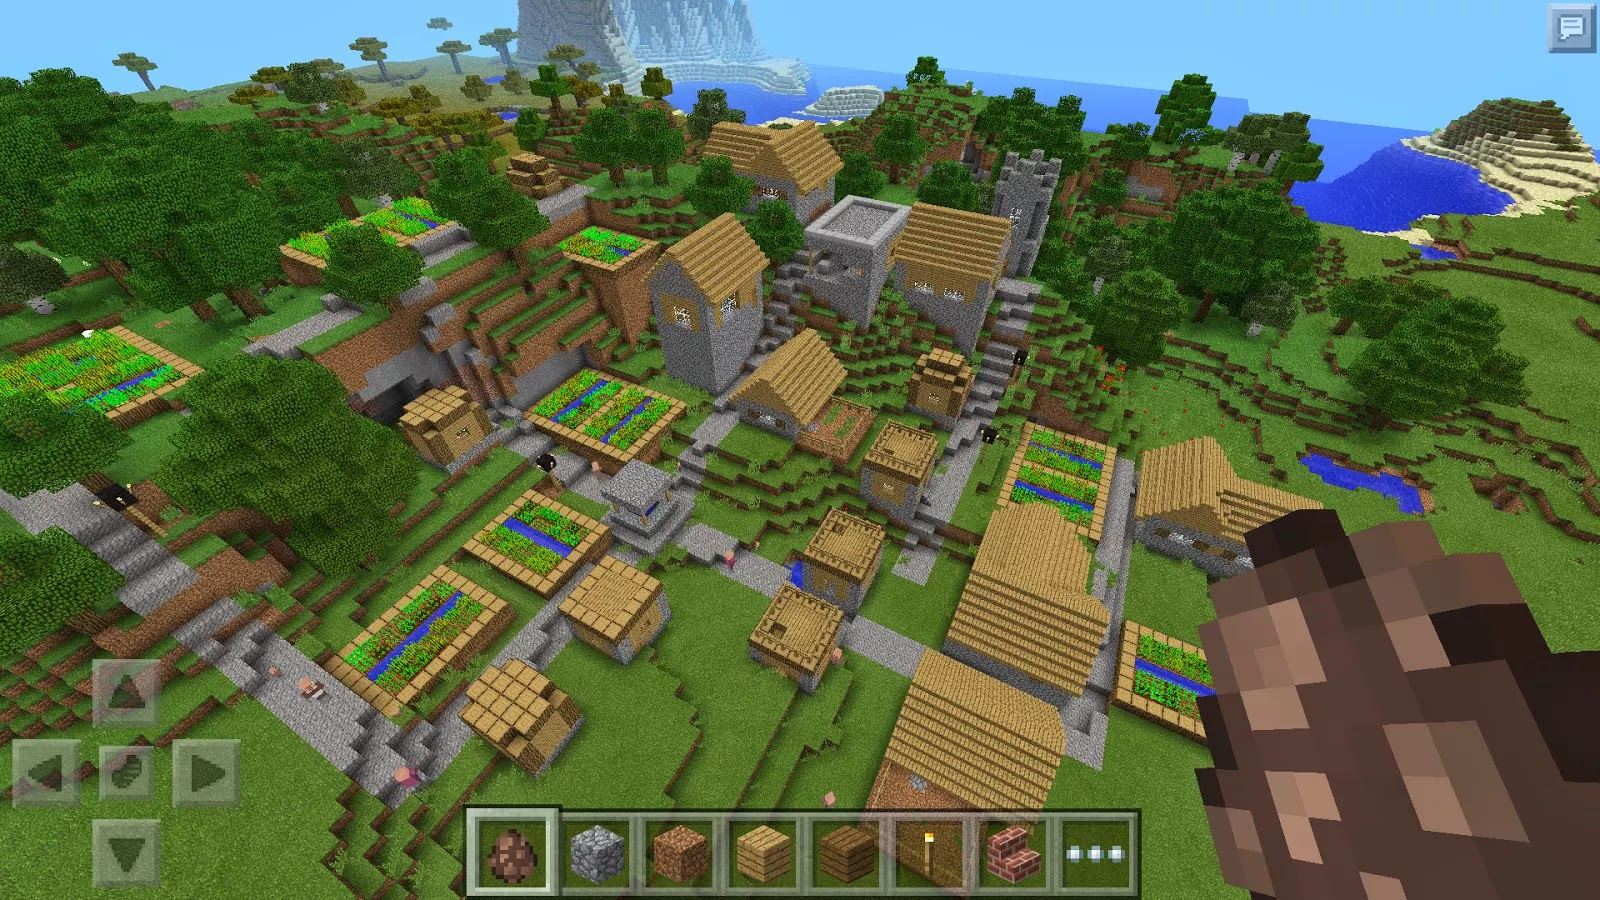 Minecraft - Pocket Edition v.0.11.0 Build 4